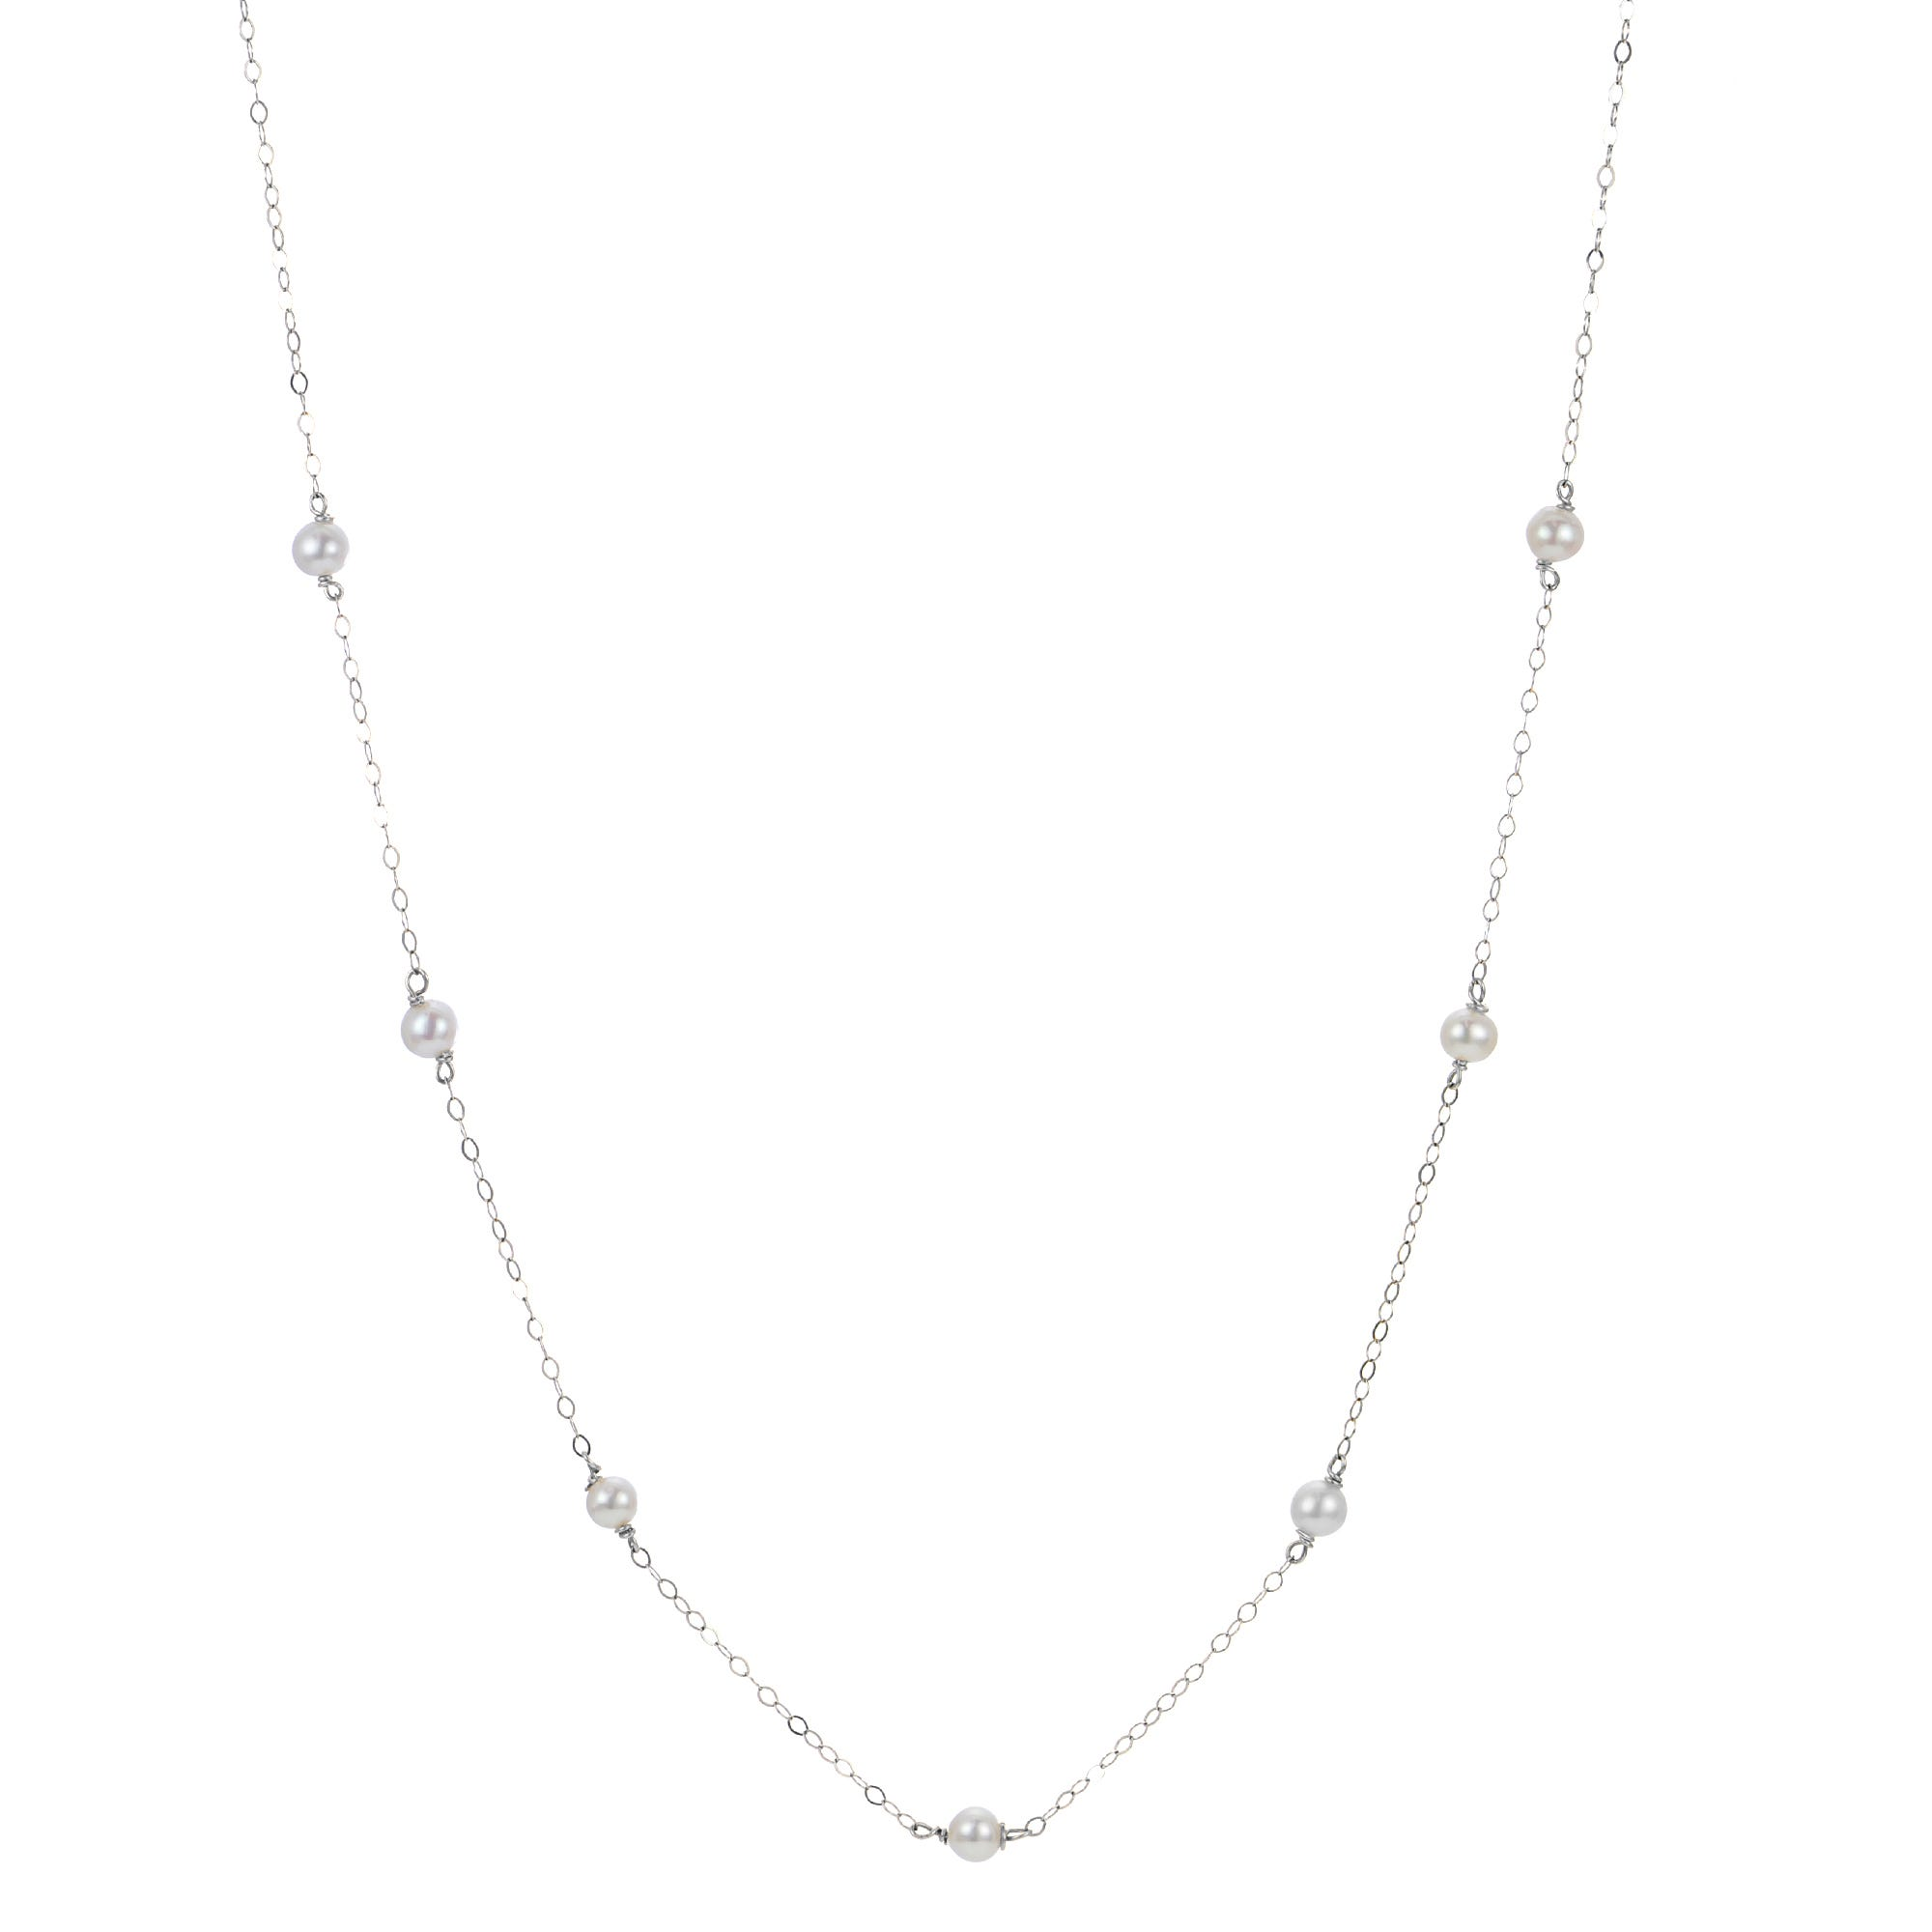 Freshwater Pearl Children's Necklace in Sterling Silver